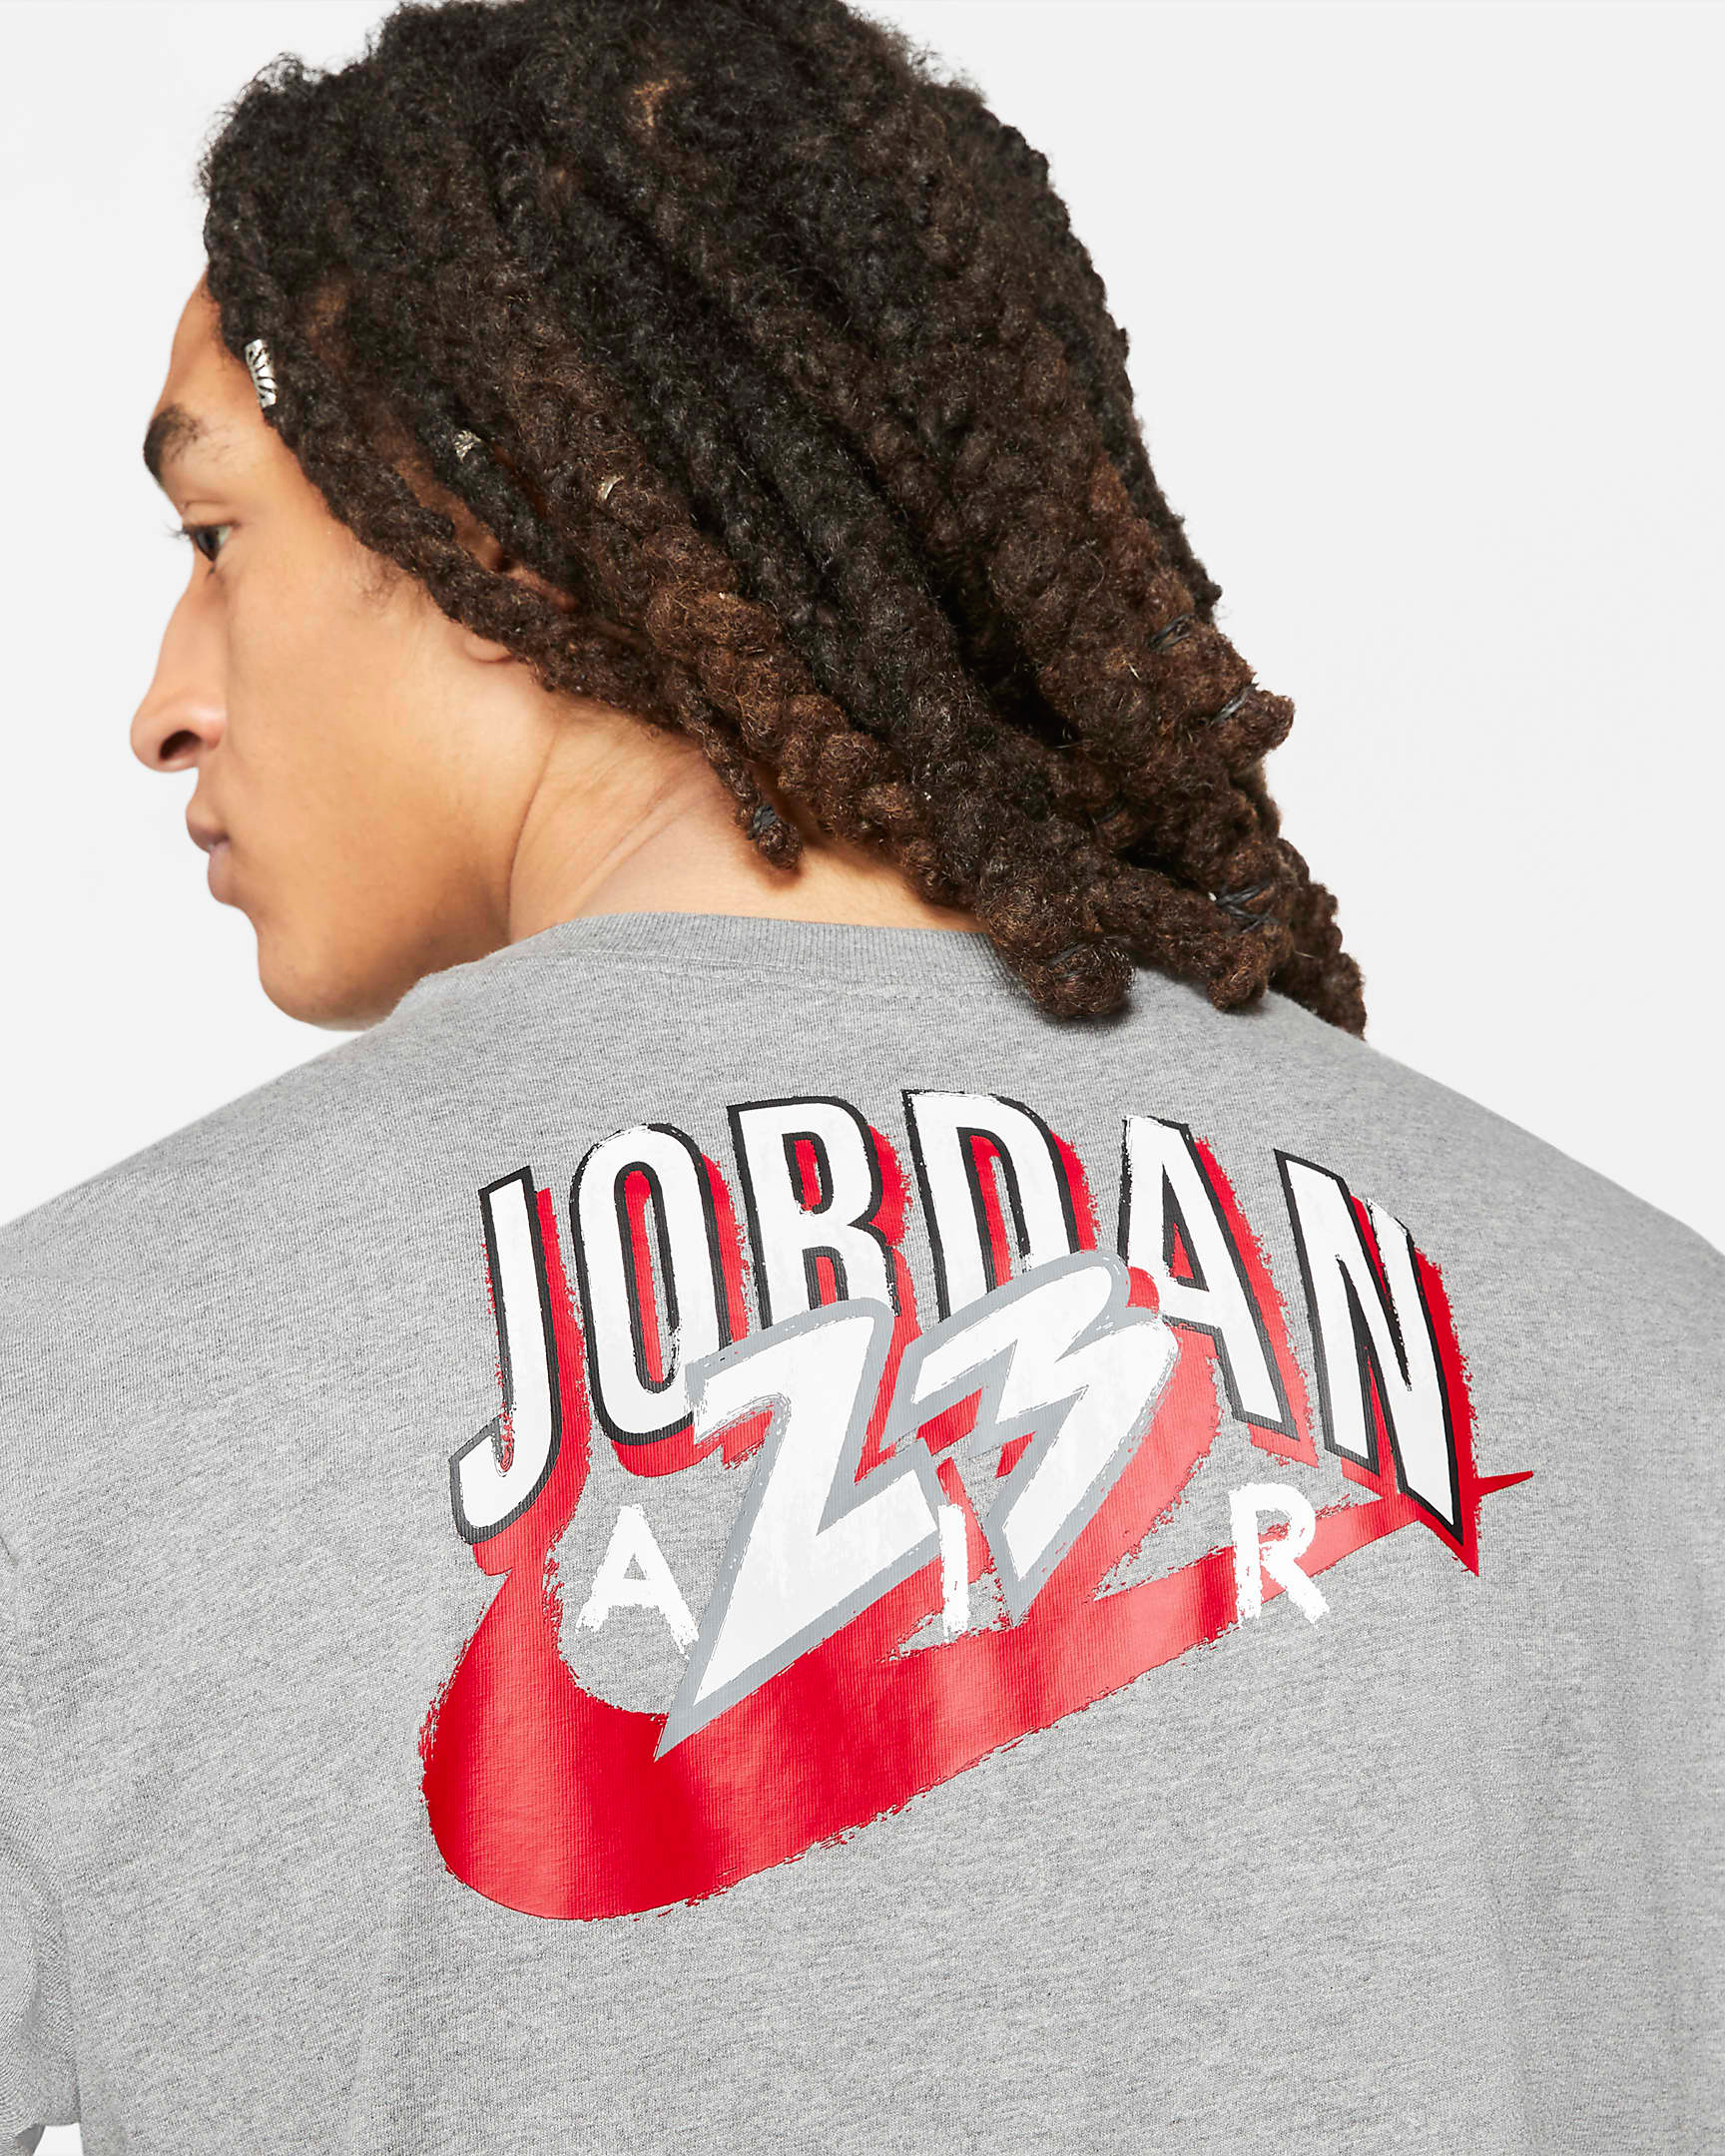 jordan-23-swoosh-t-shirt-grey-red-summer-2021-2